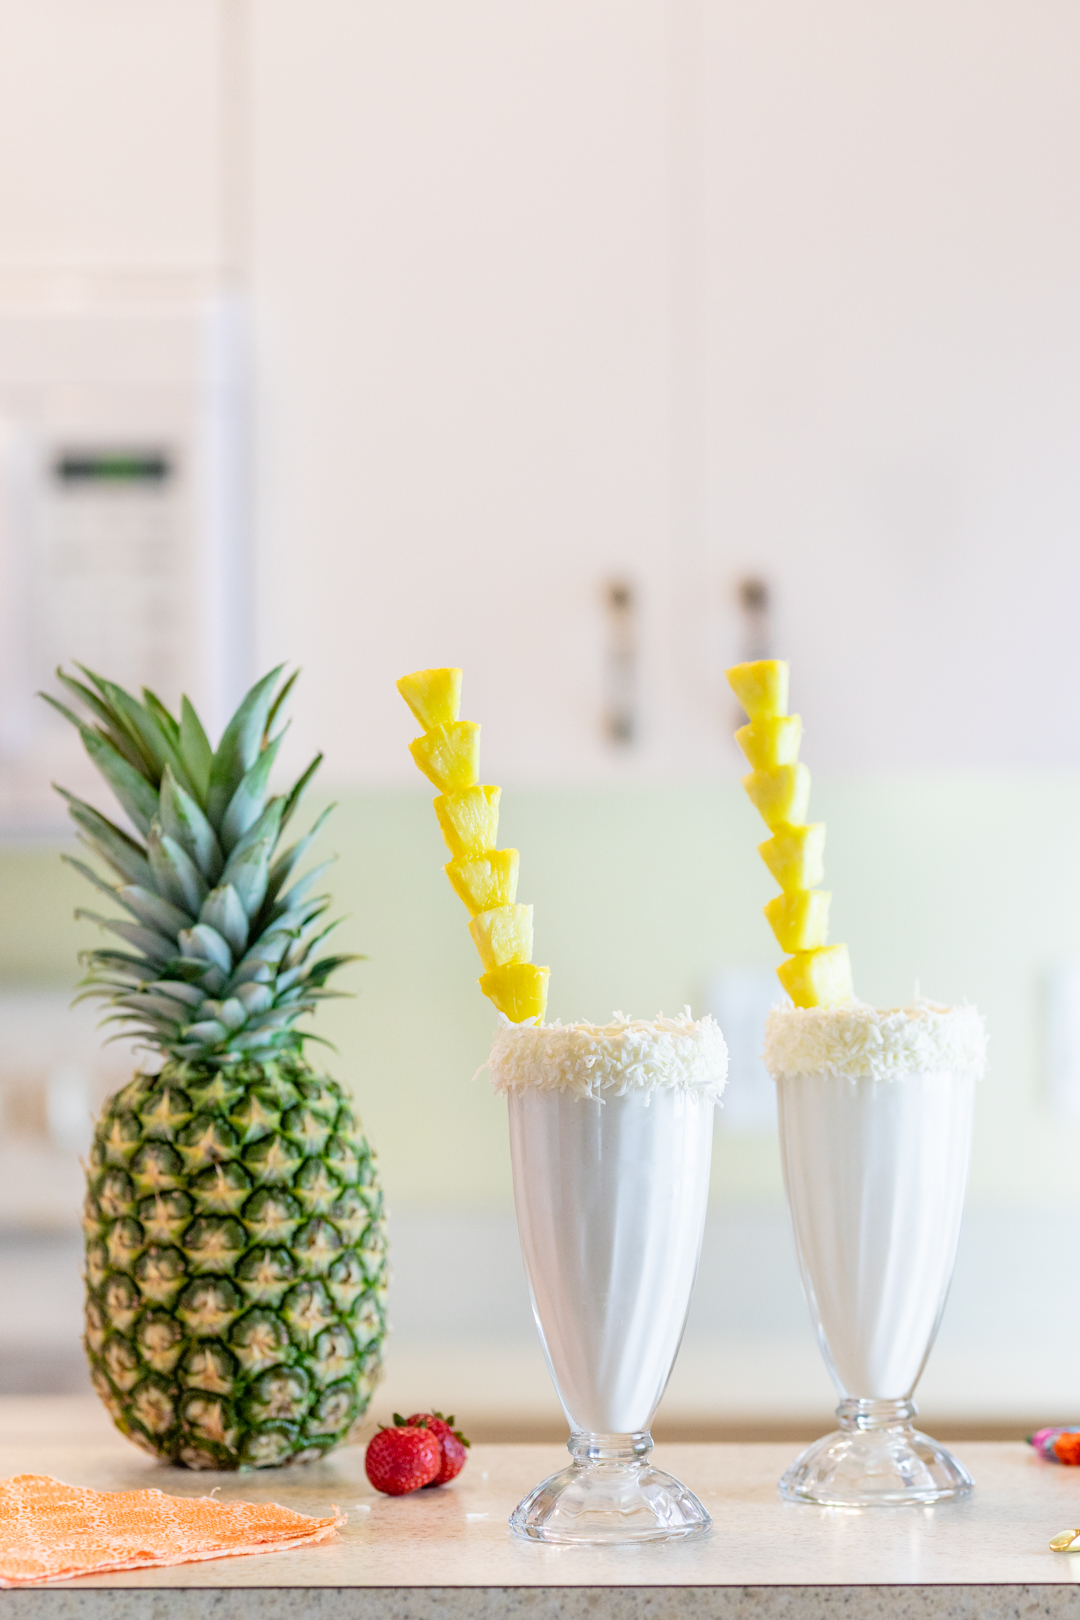 Tropical Milkshake Recipe with a tasty twist.